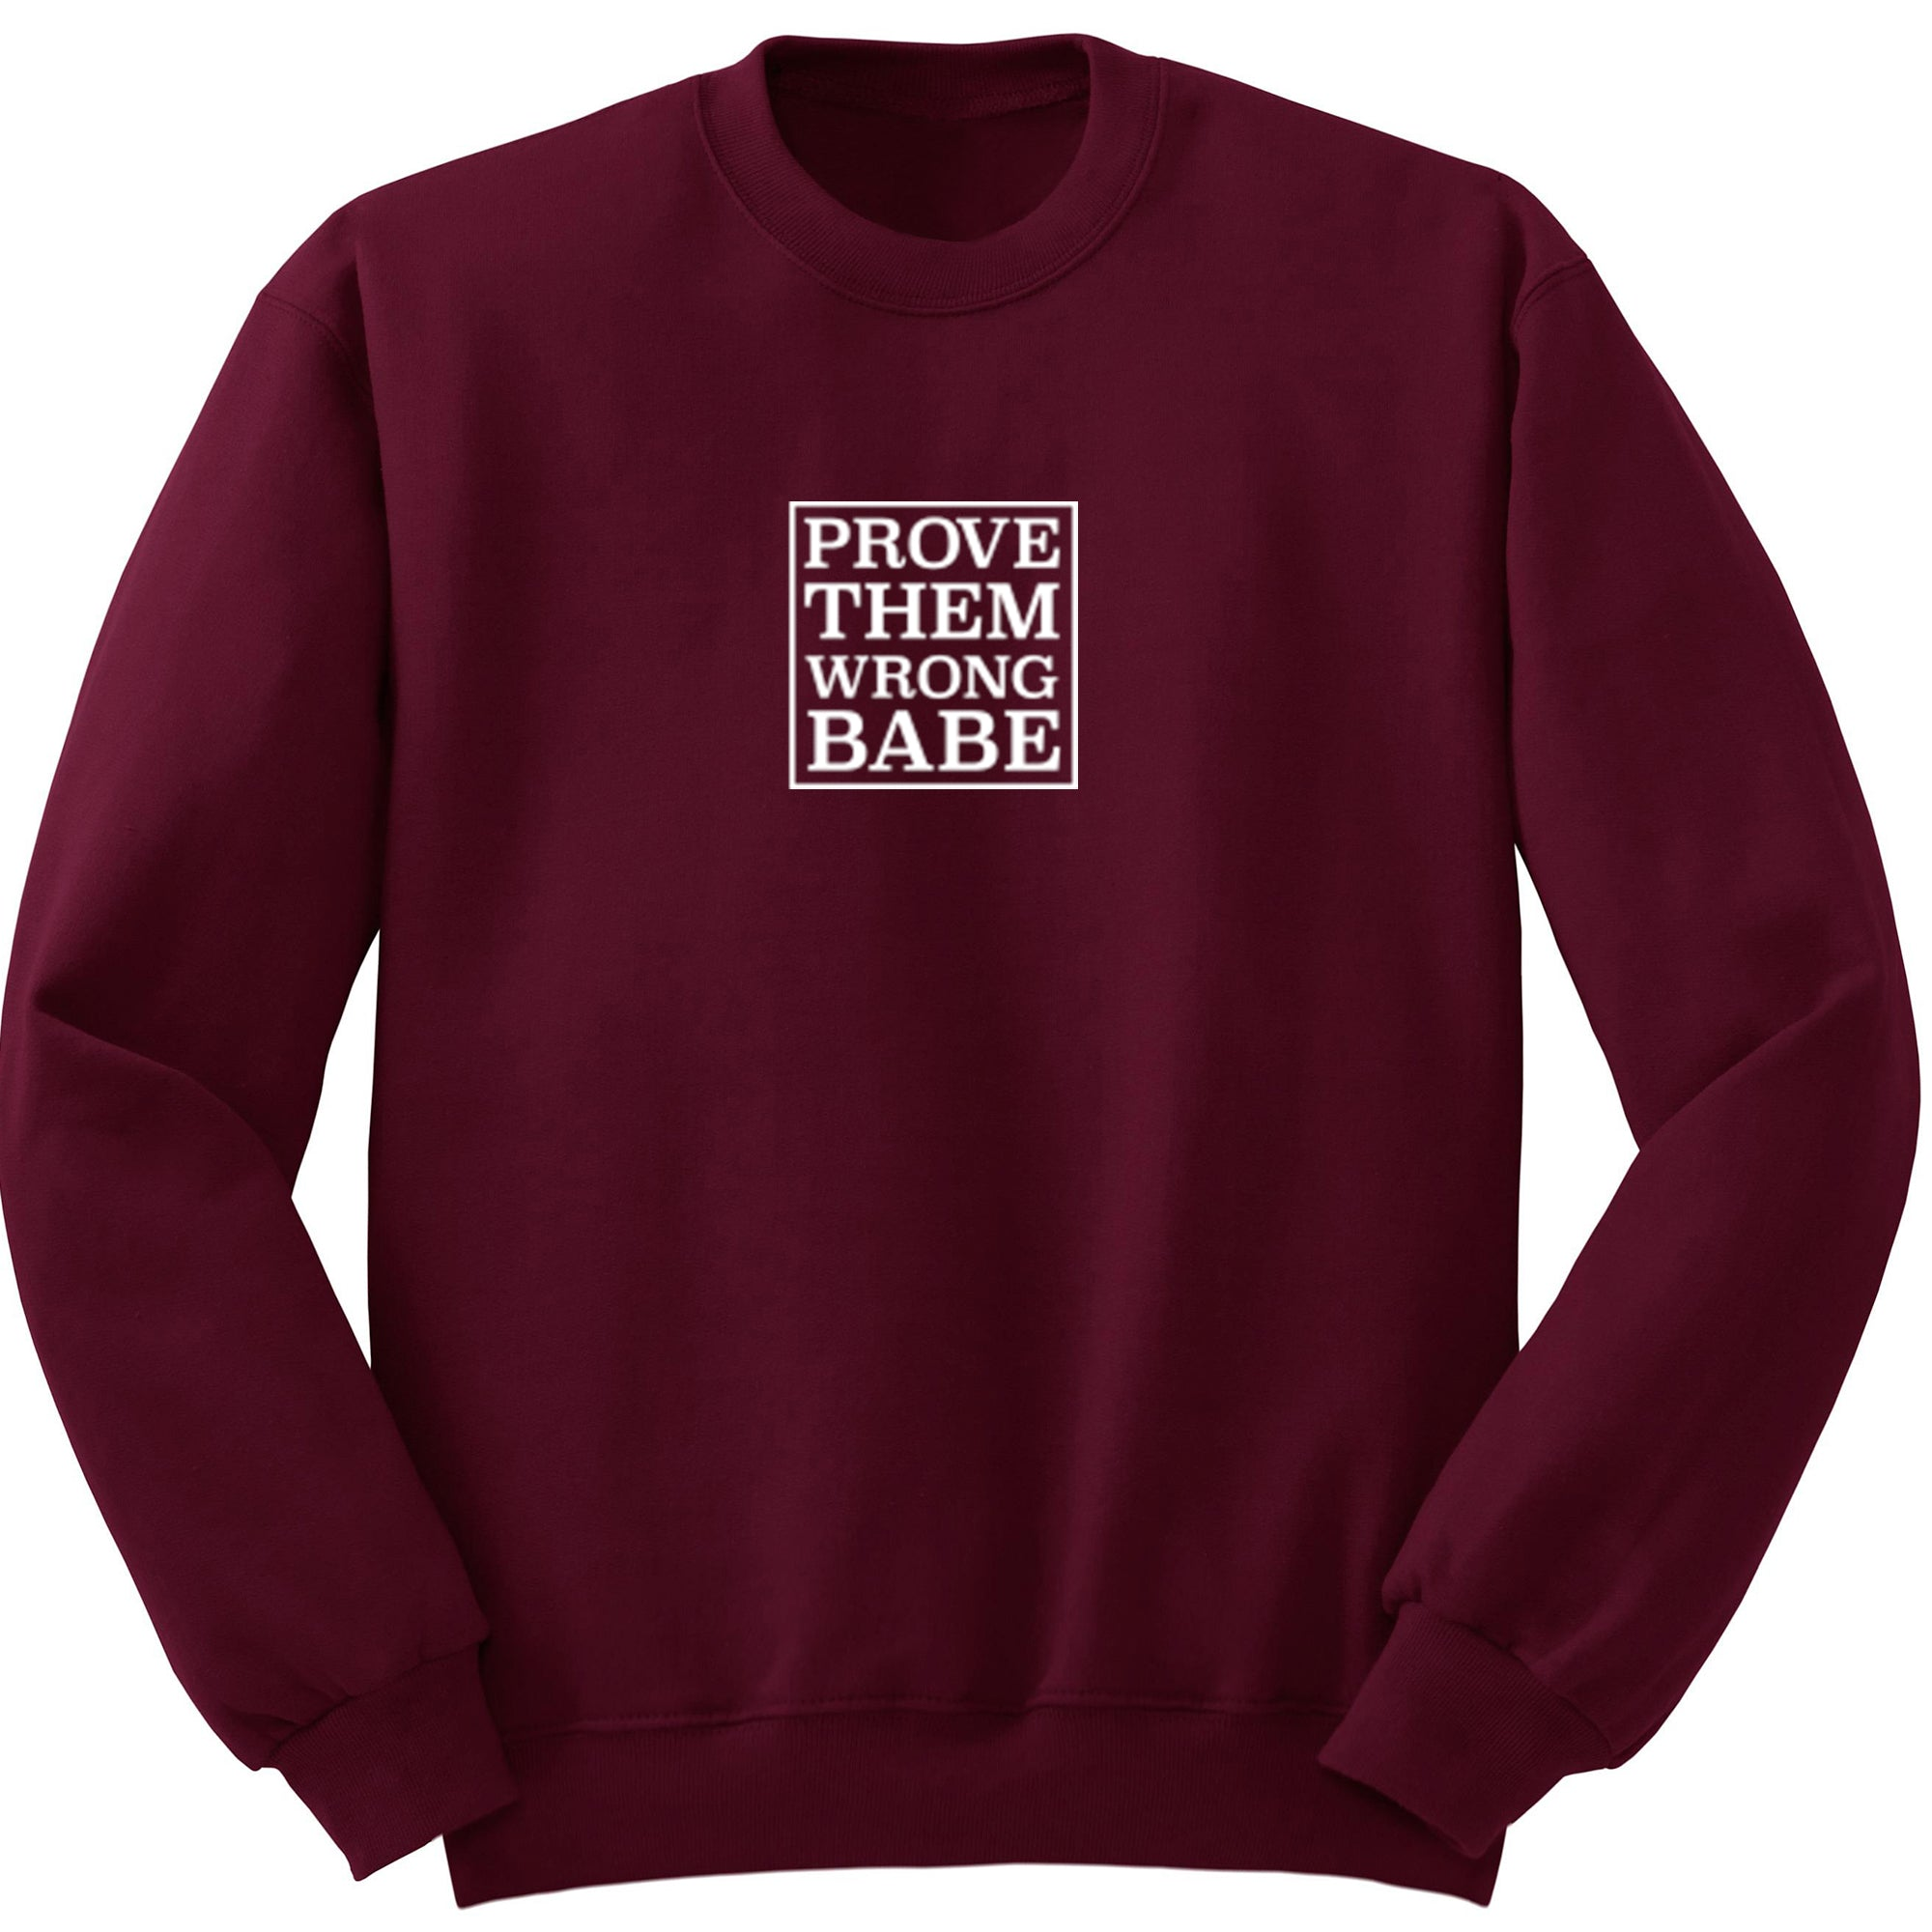 Prove Them Wrong Babe Unisex Jumper S0987 - Illustrated Identity Ltd.